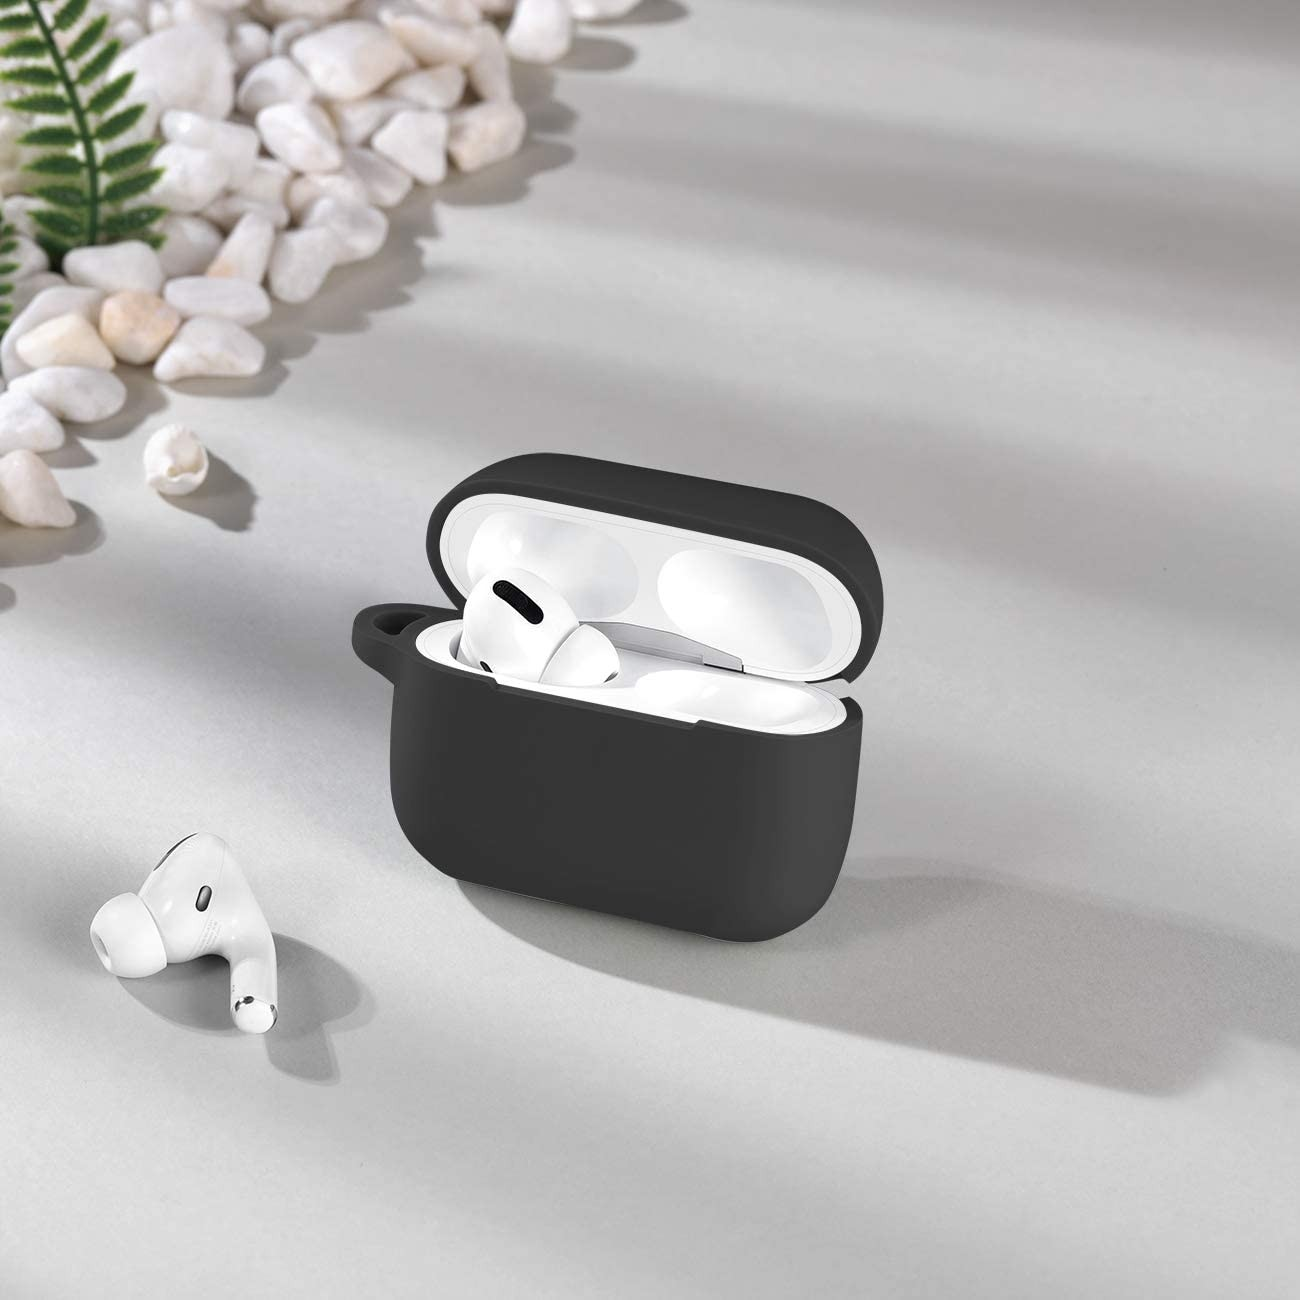 Wepro Shockproof Silicone Protective Skin with Keychain for AirPods Pro - Black, ZF-0084